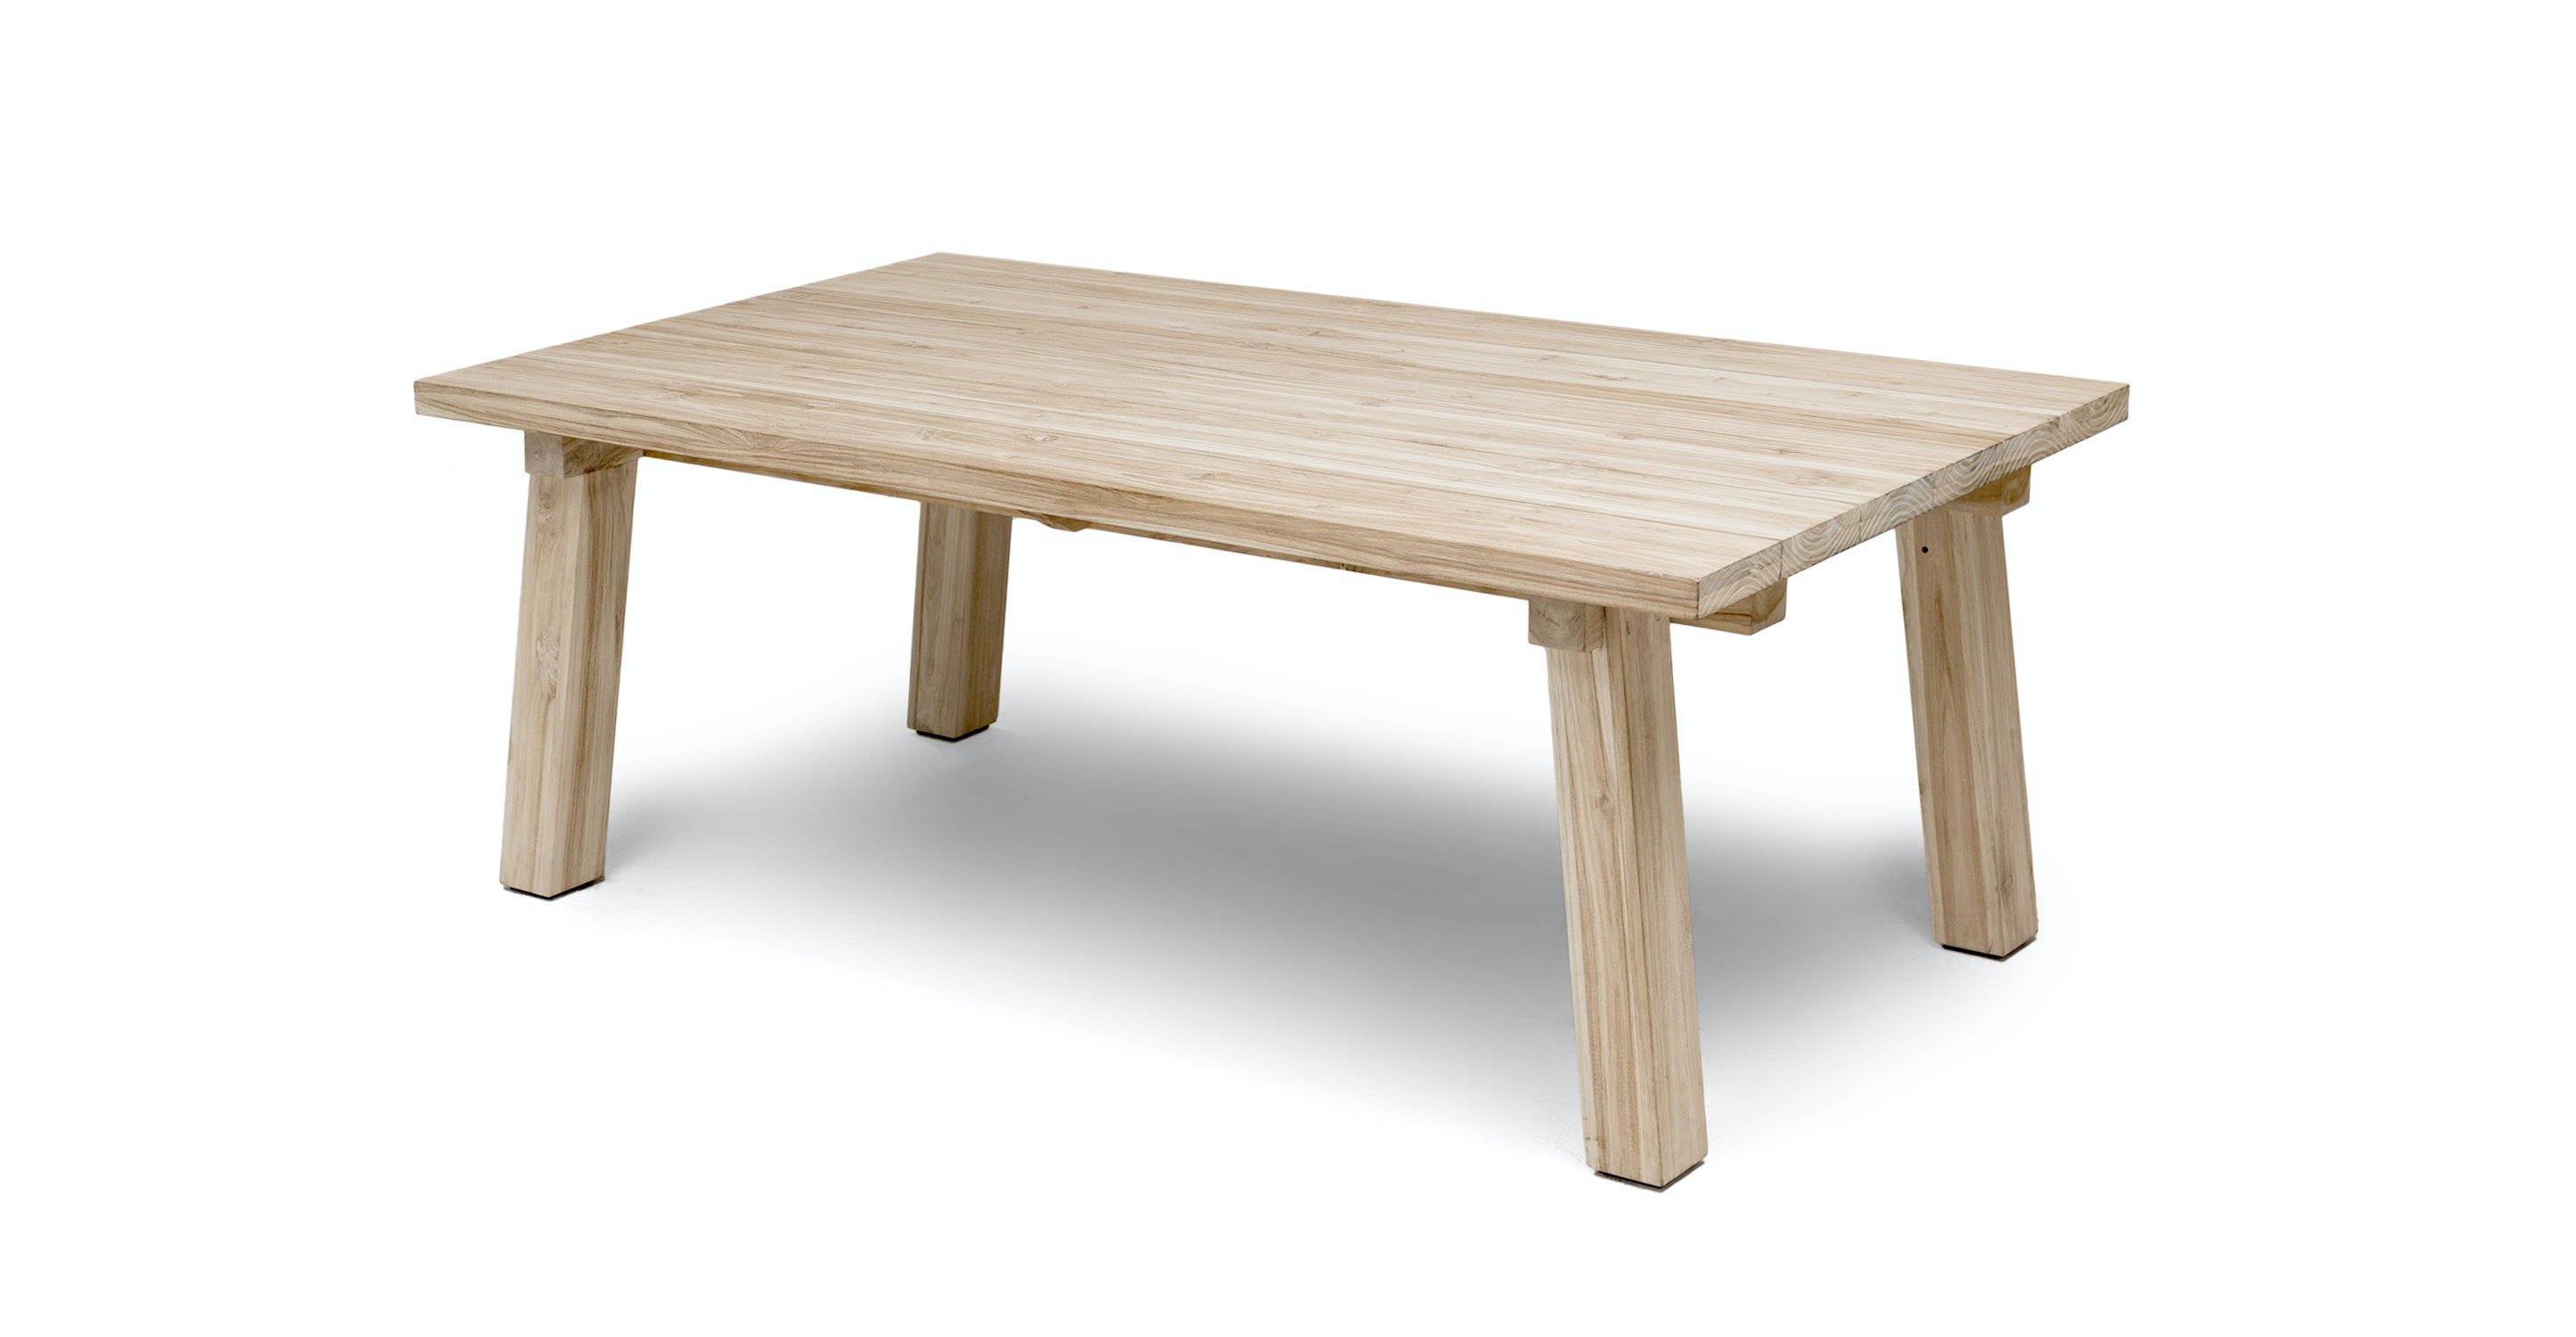 Teaka Dining Table For 6   Dining Tables   Article | Modern, Mid Century  And Scandinavian Furniture